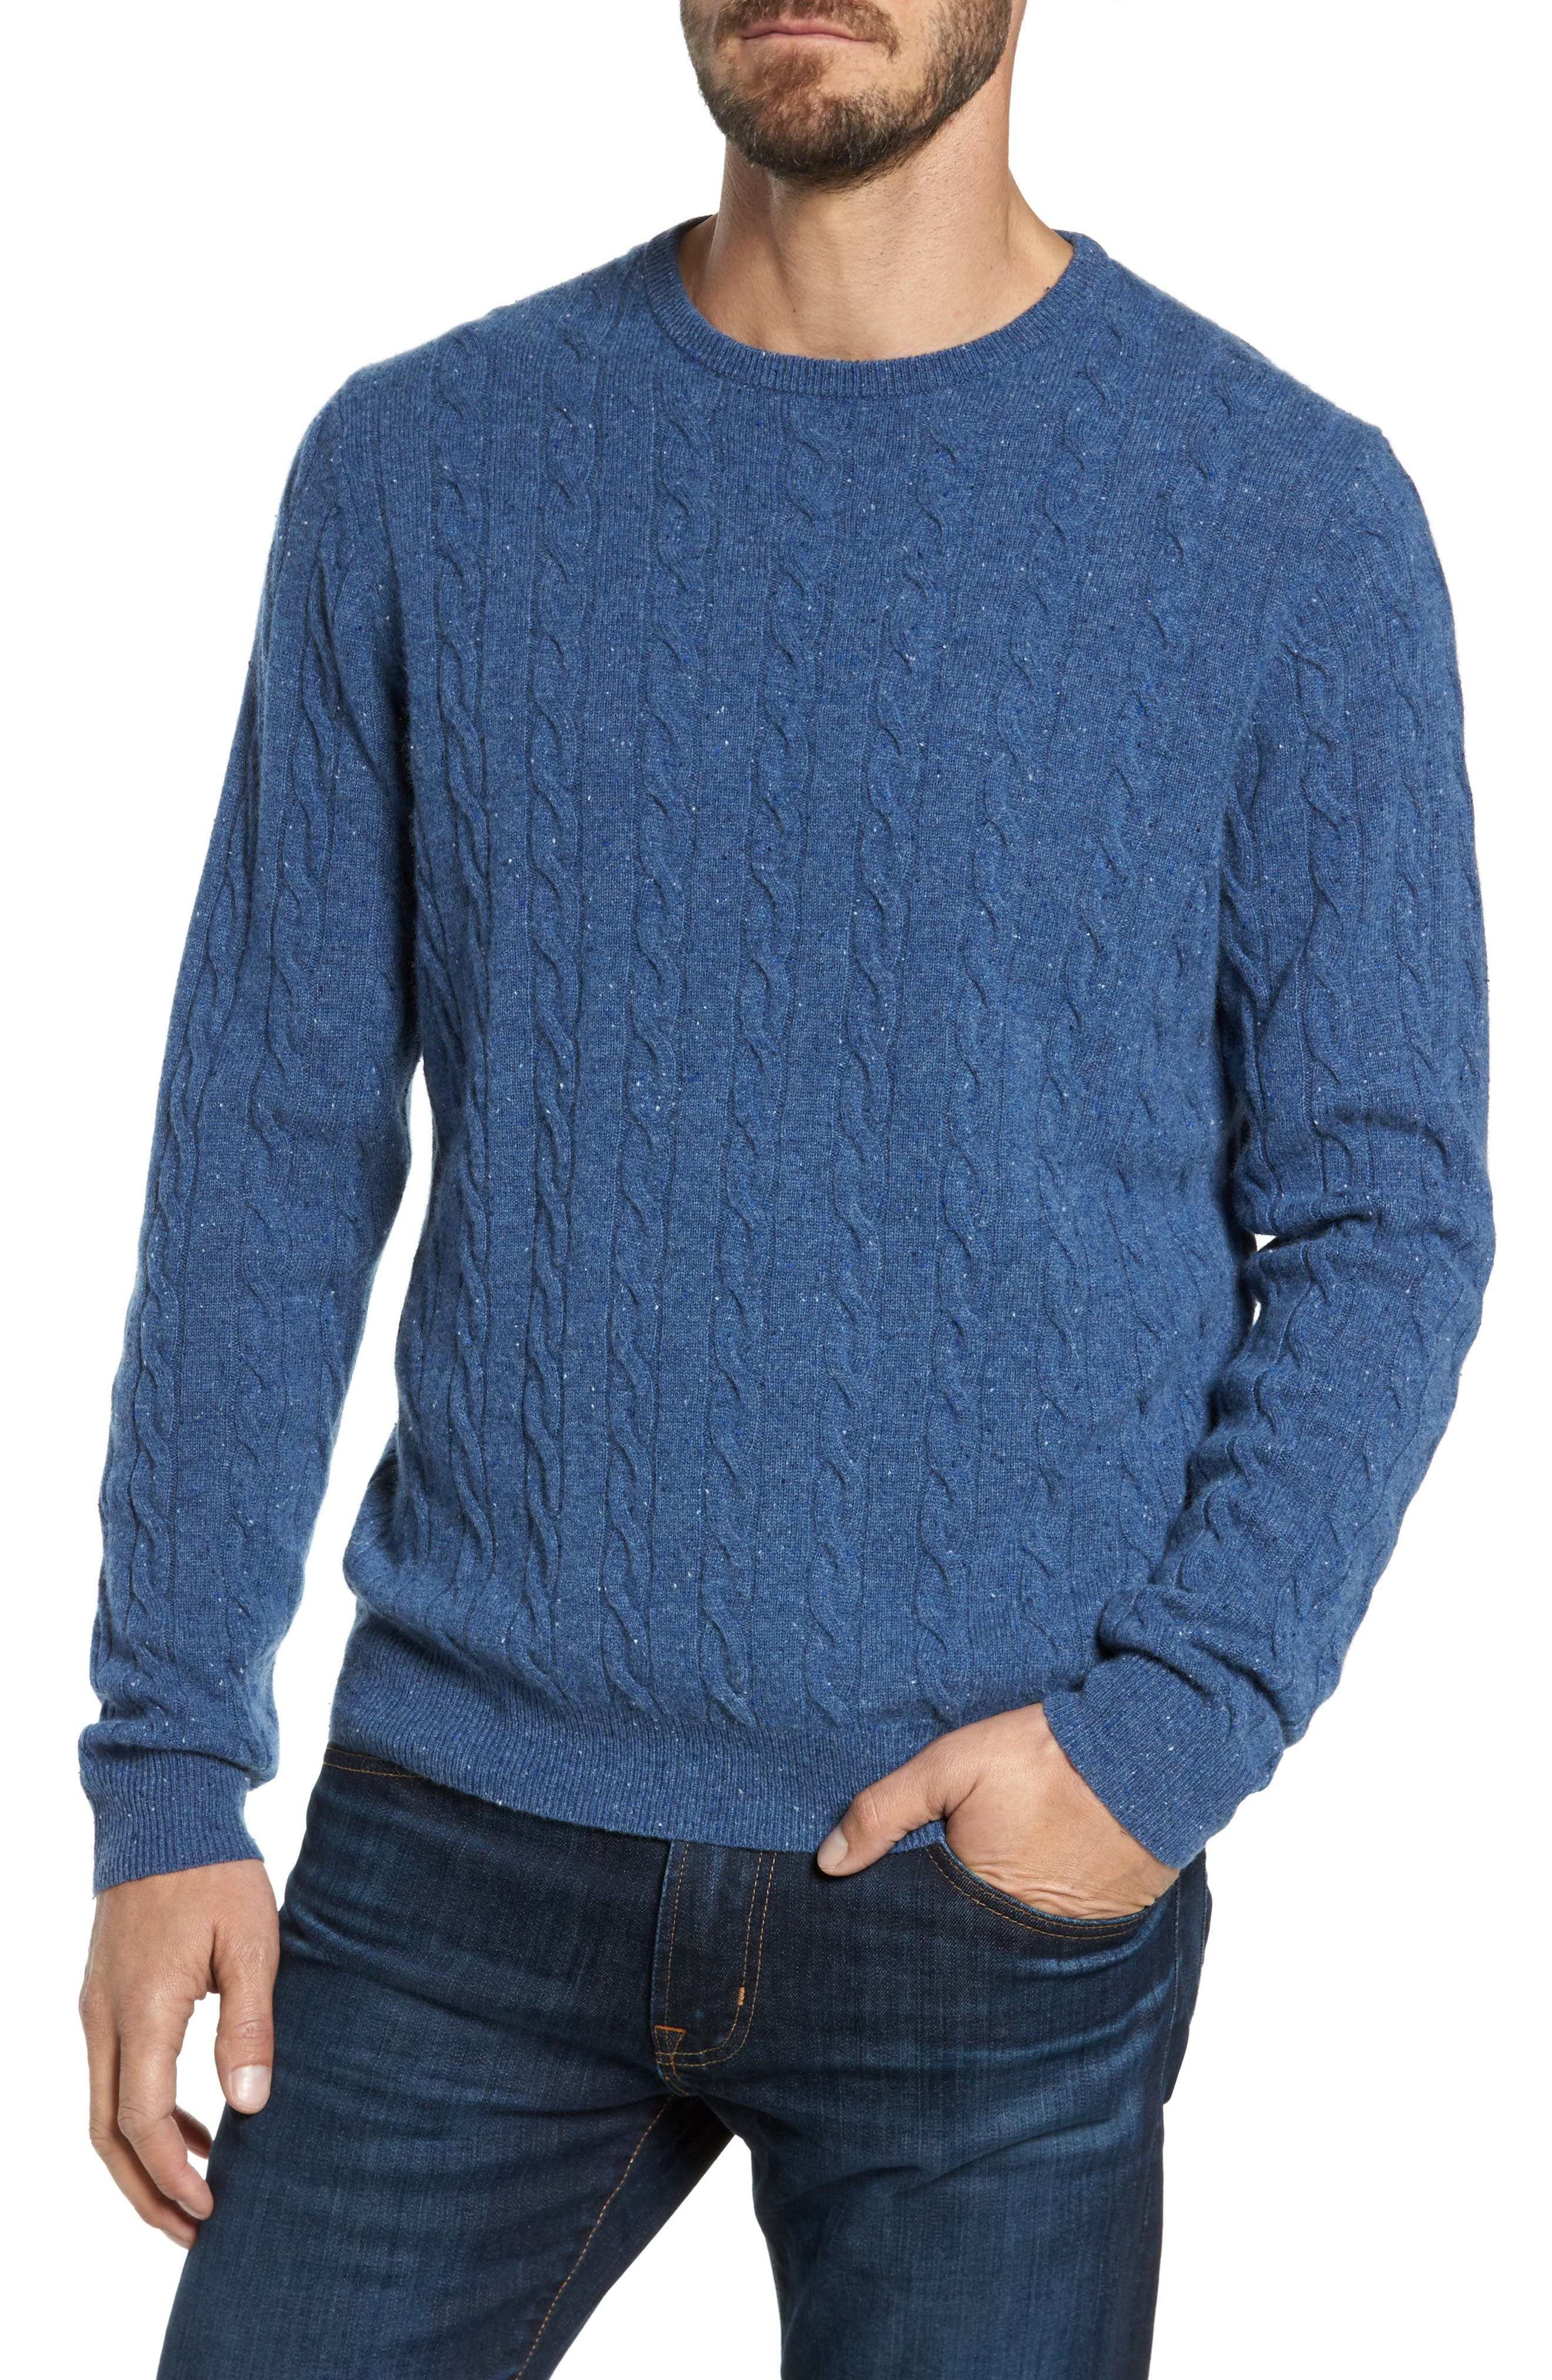 Nordstrom Men's Shop Cashmere Cable Knit Sweater